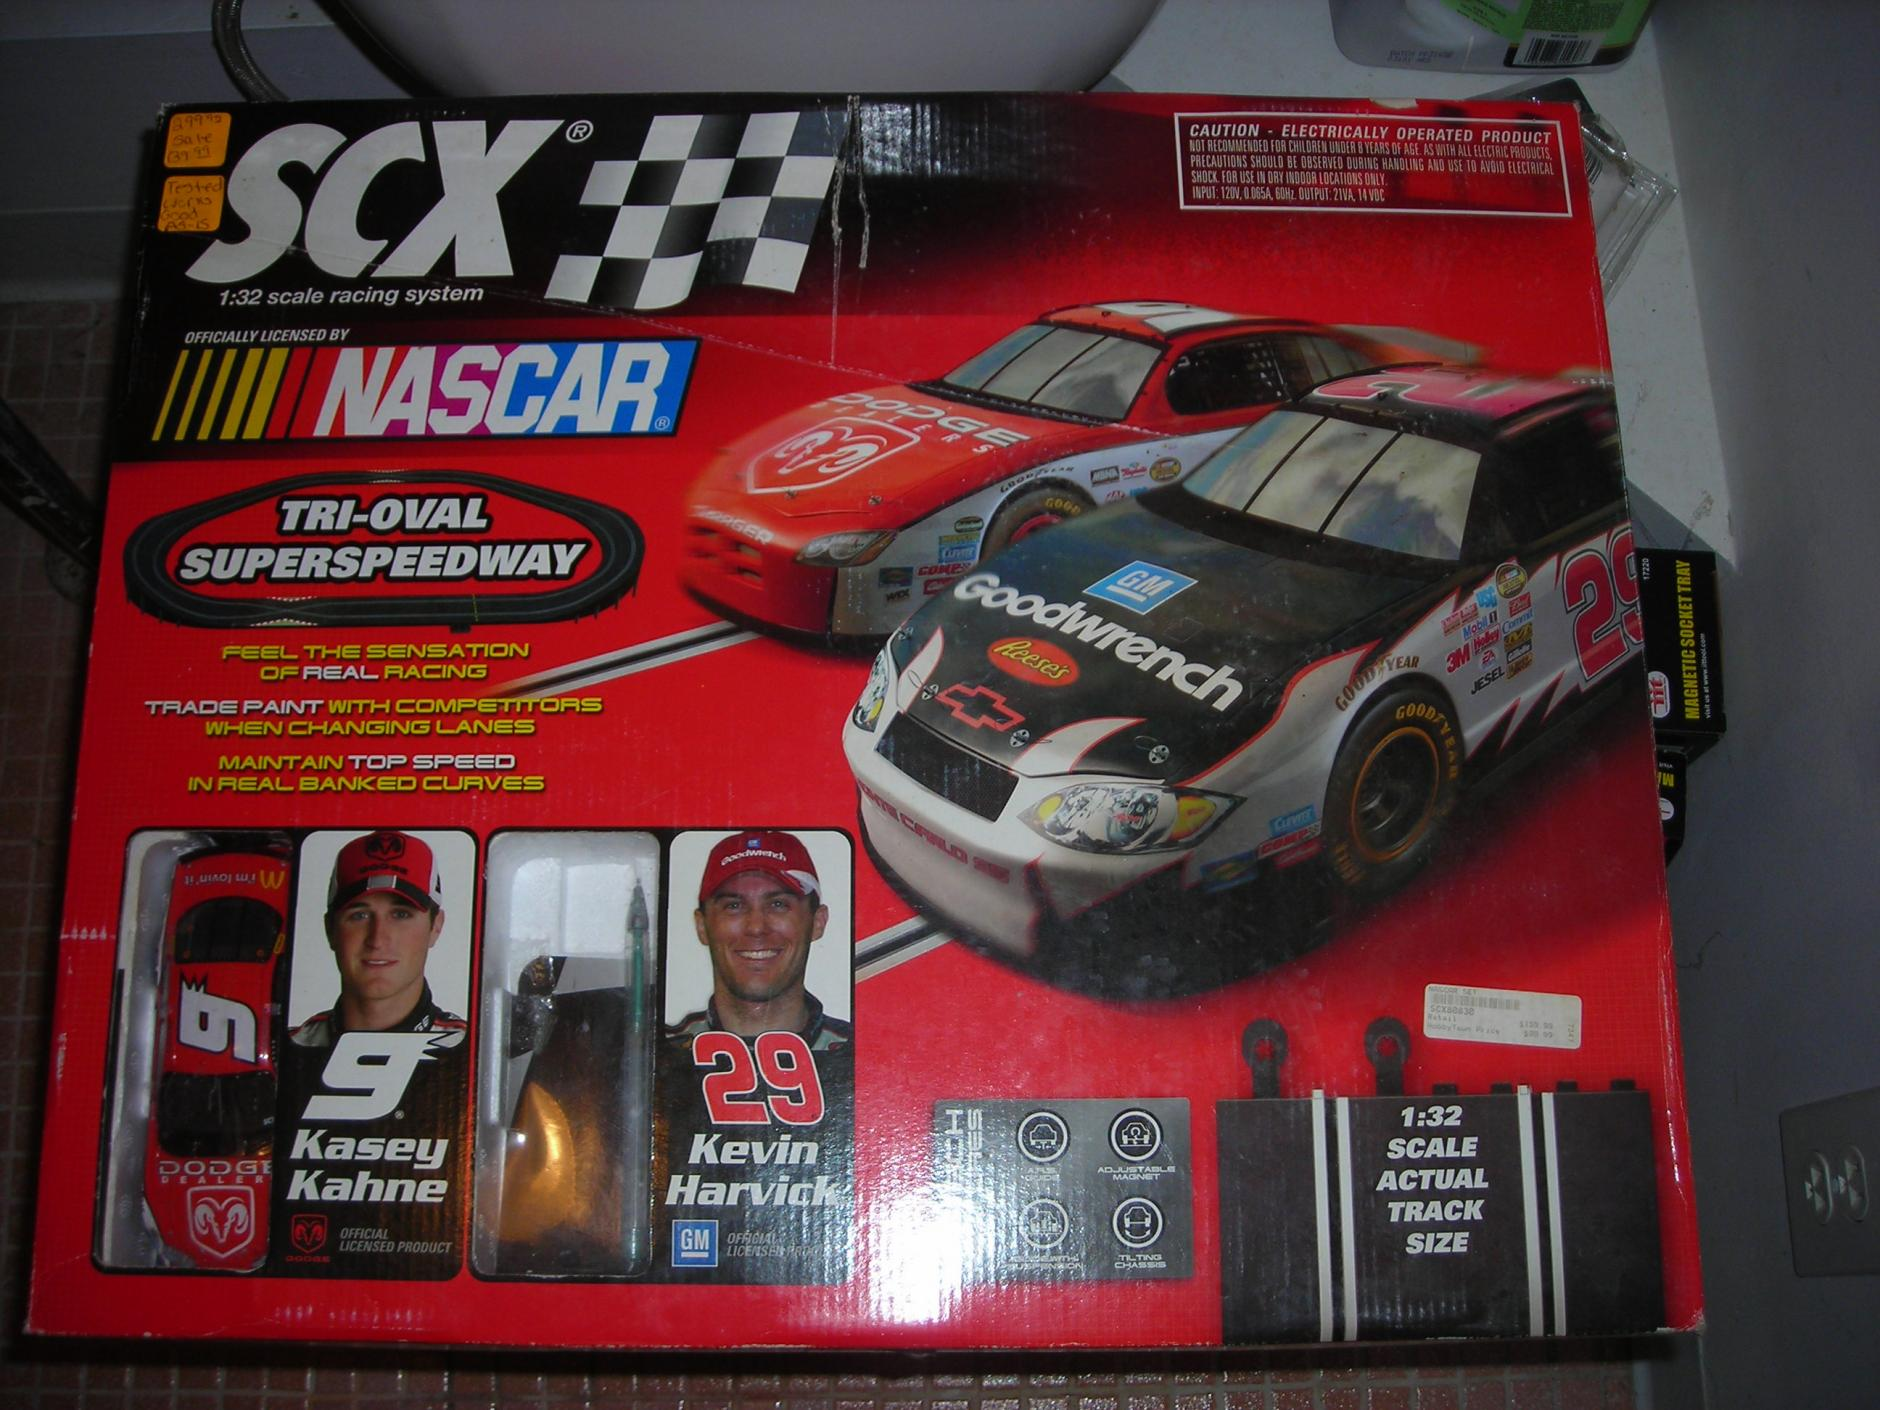 Nascar scx digital slot car sets